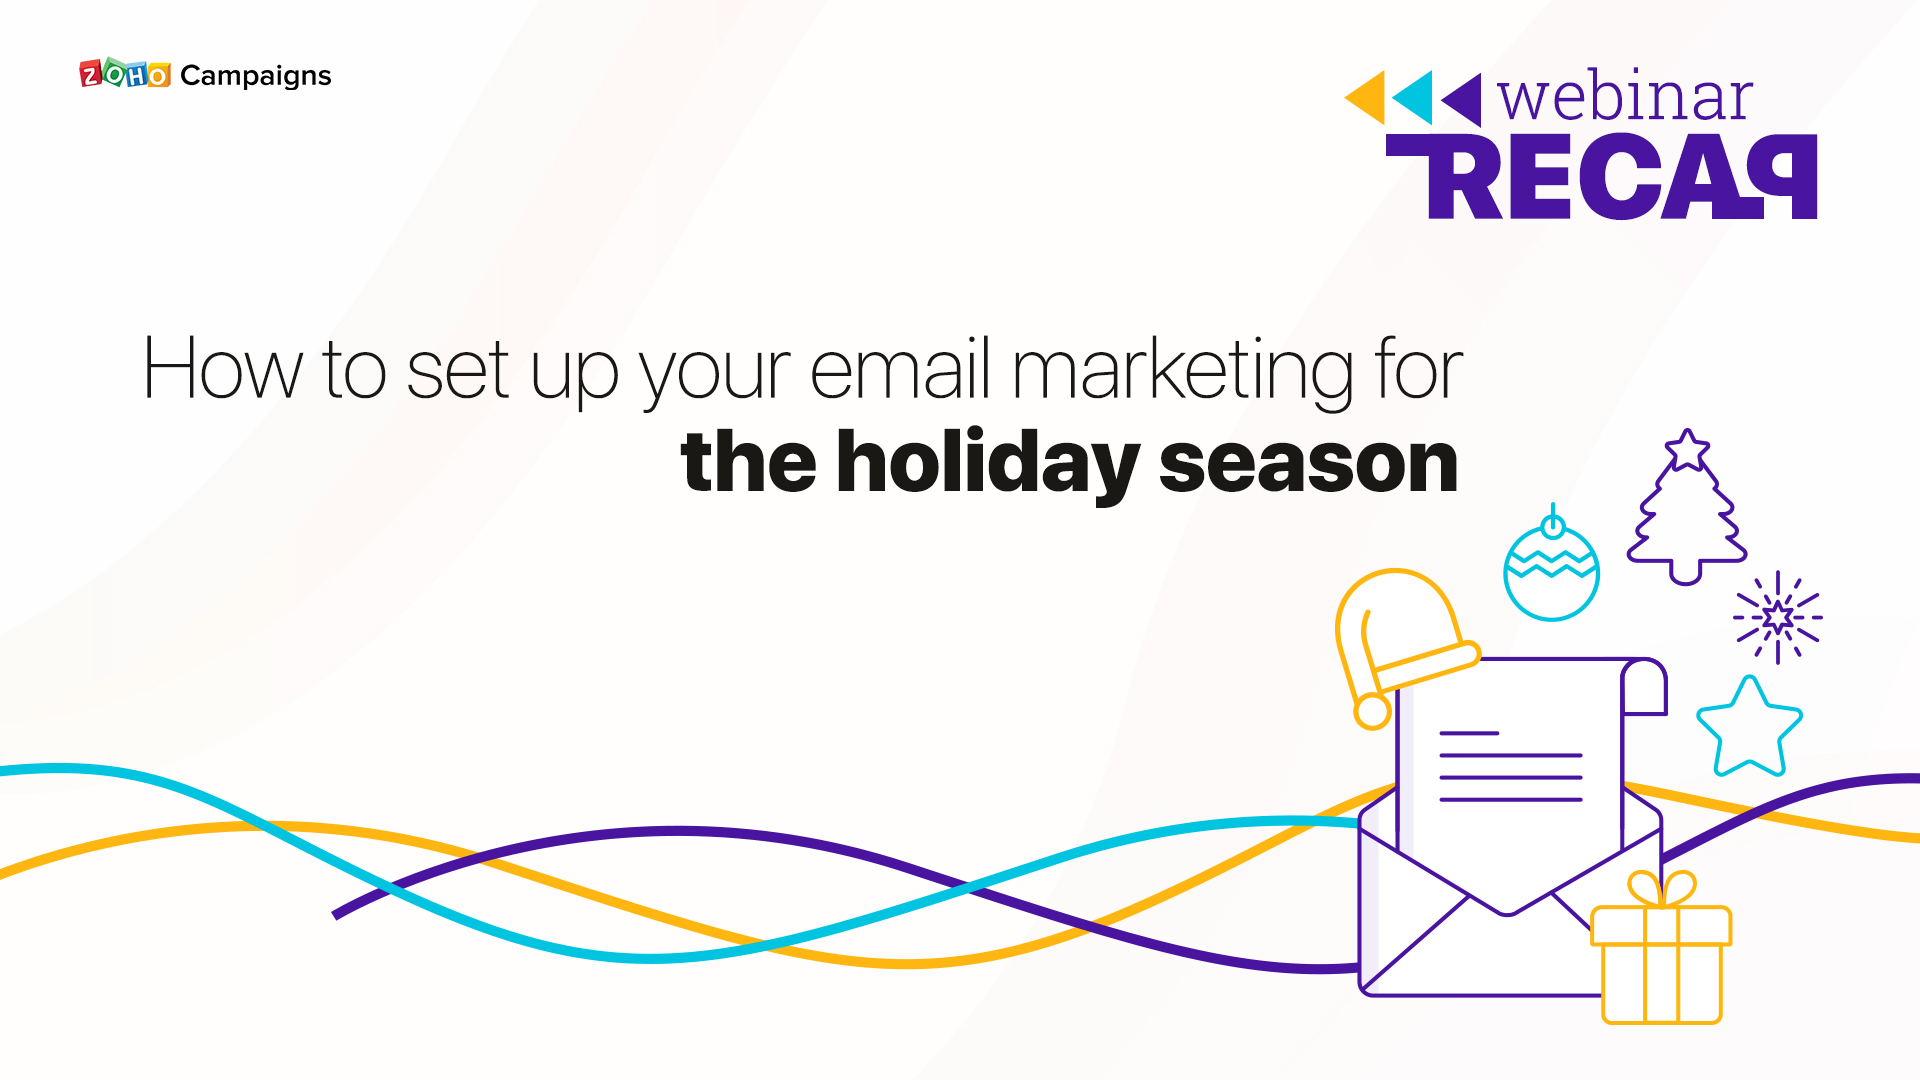 Webinar Recap: How to set up your email marketing for the holiday season